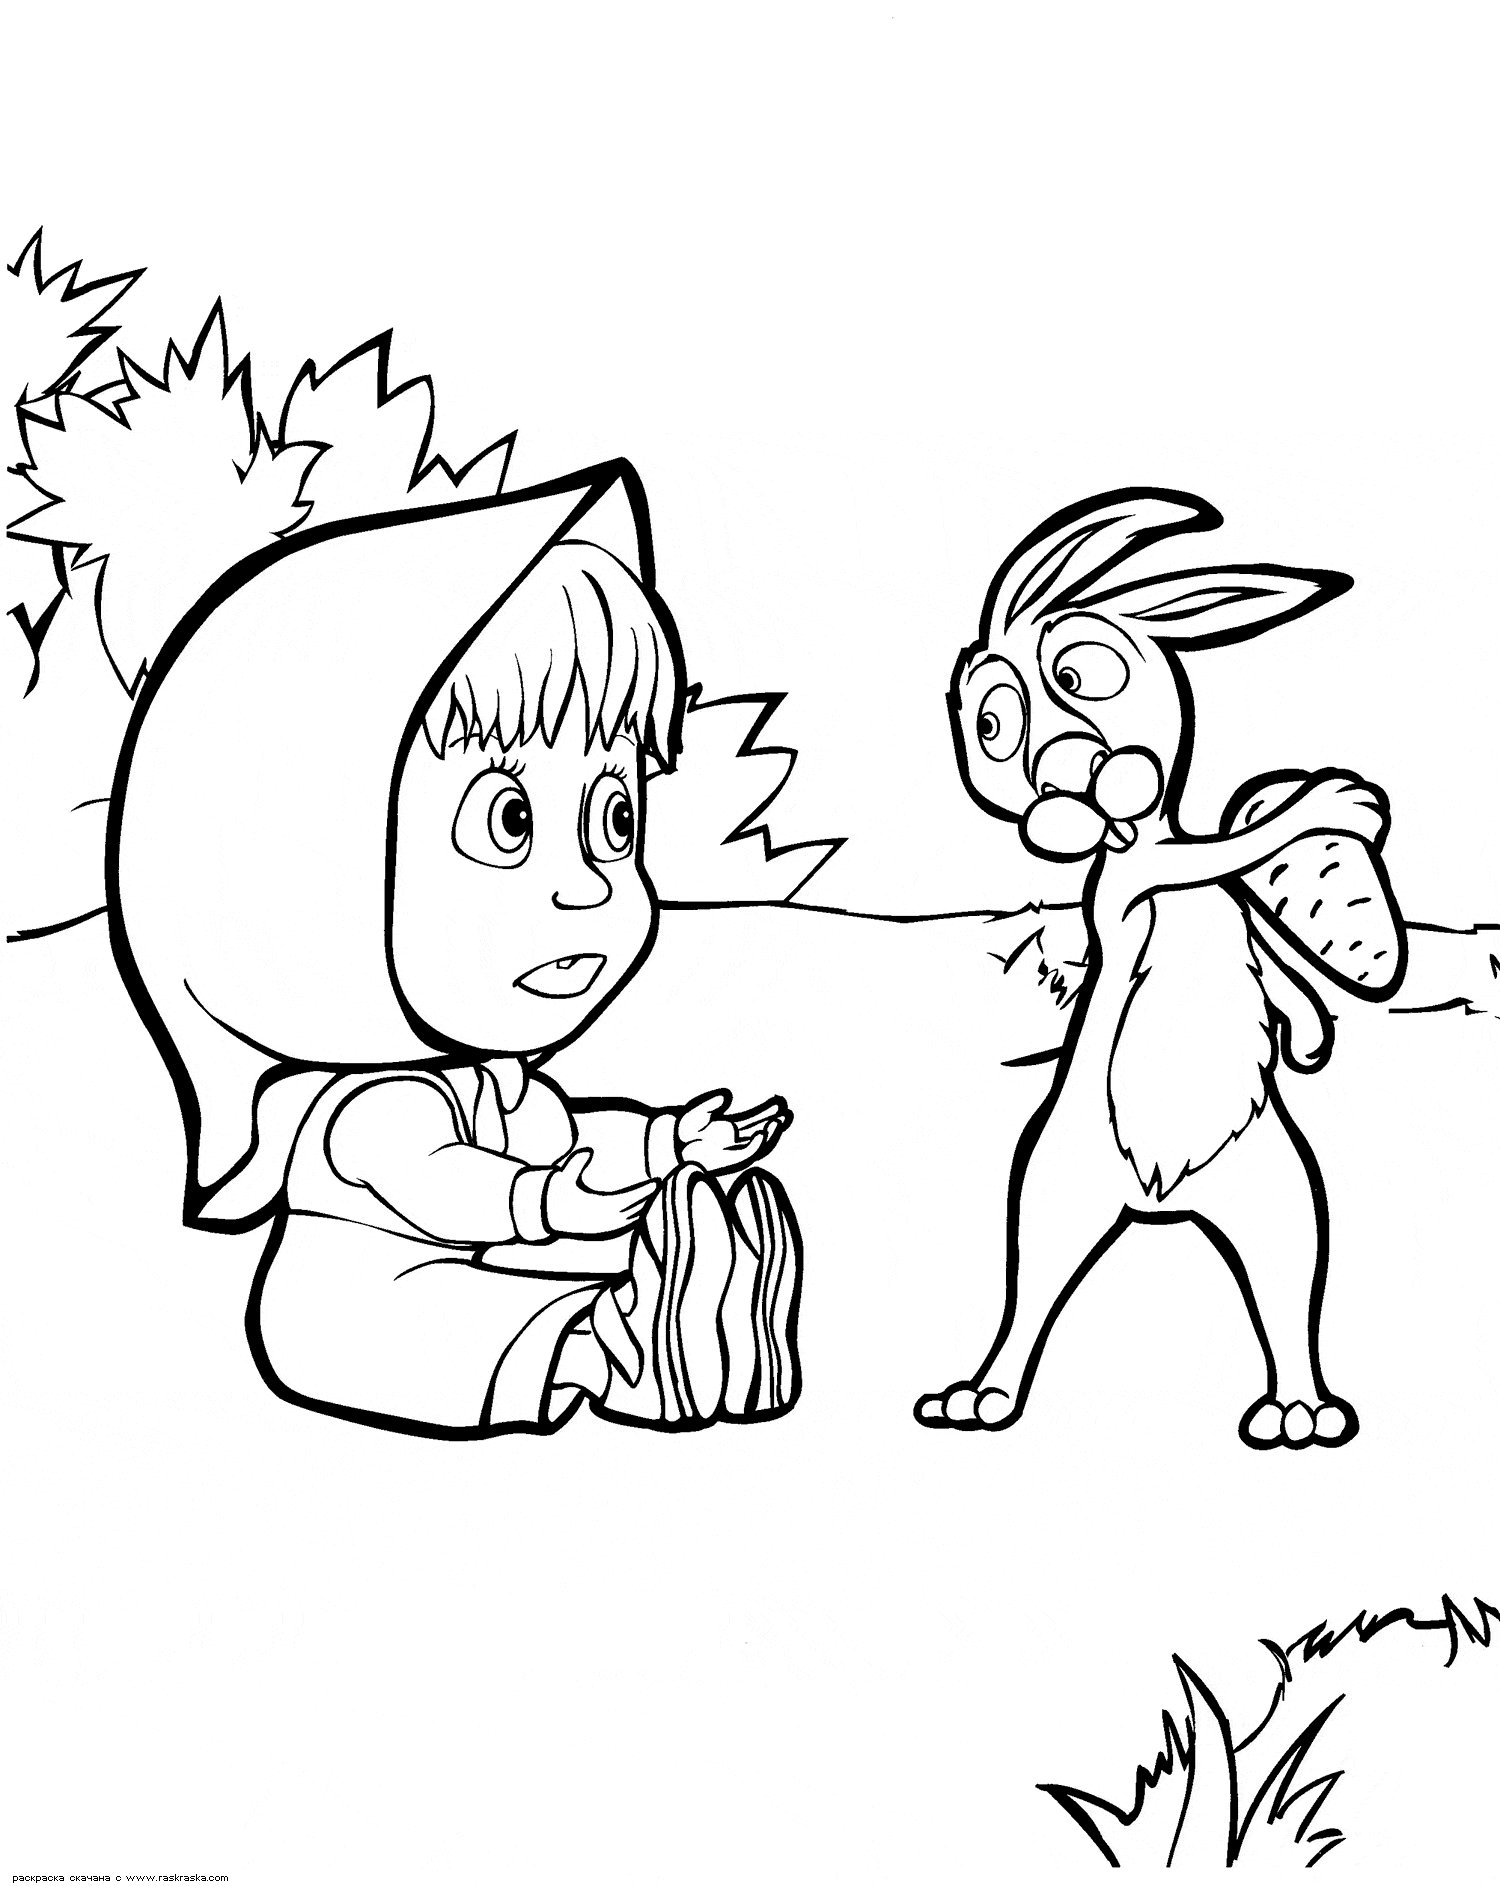 bear and hare coloring pages - photo#16